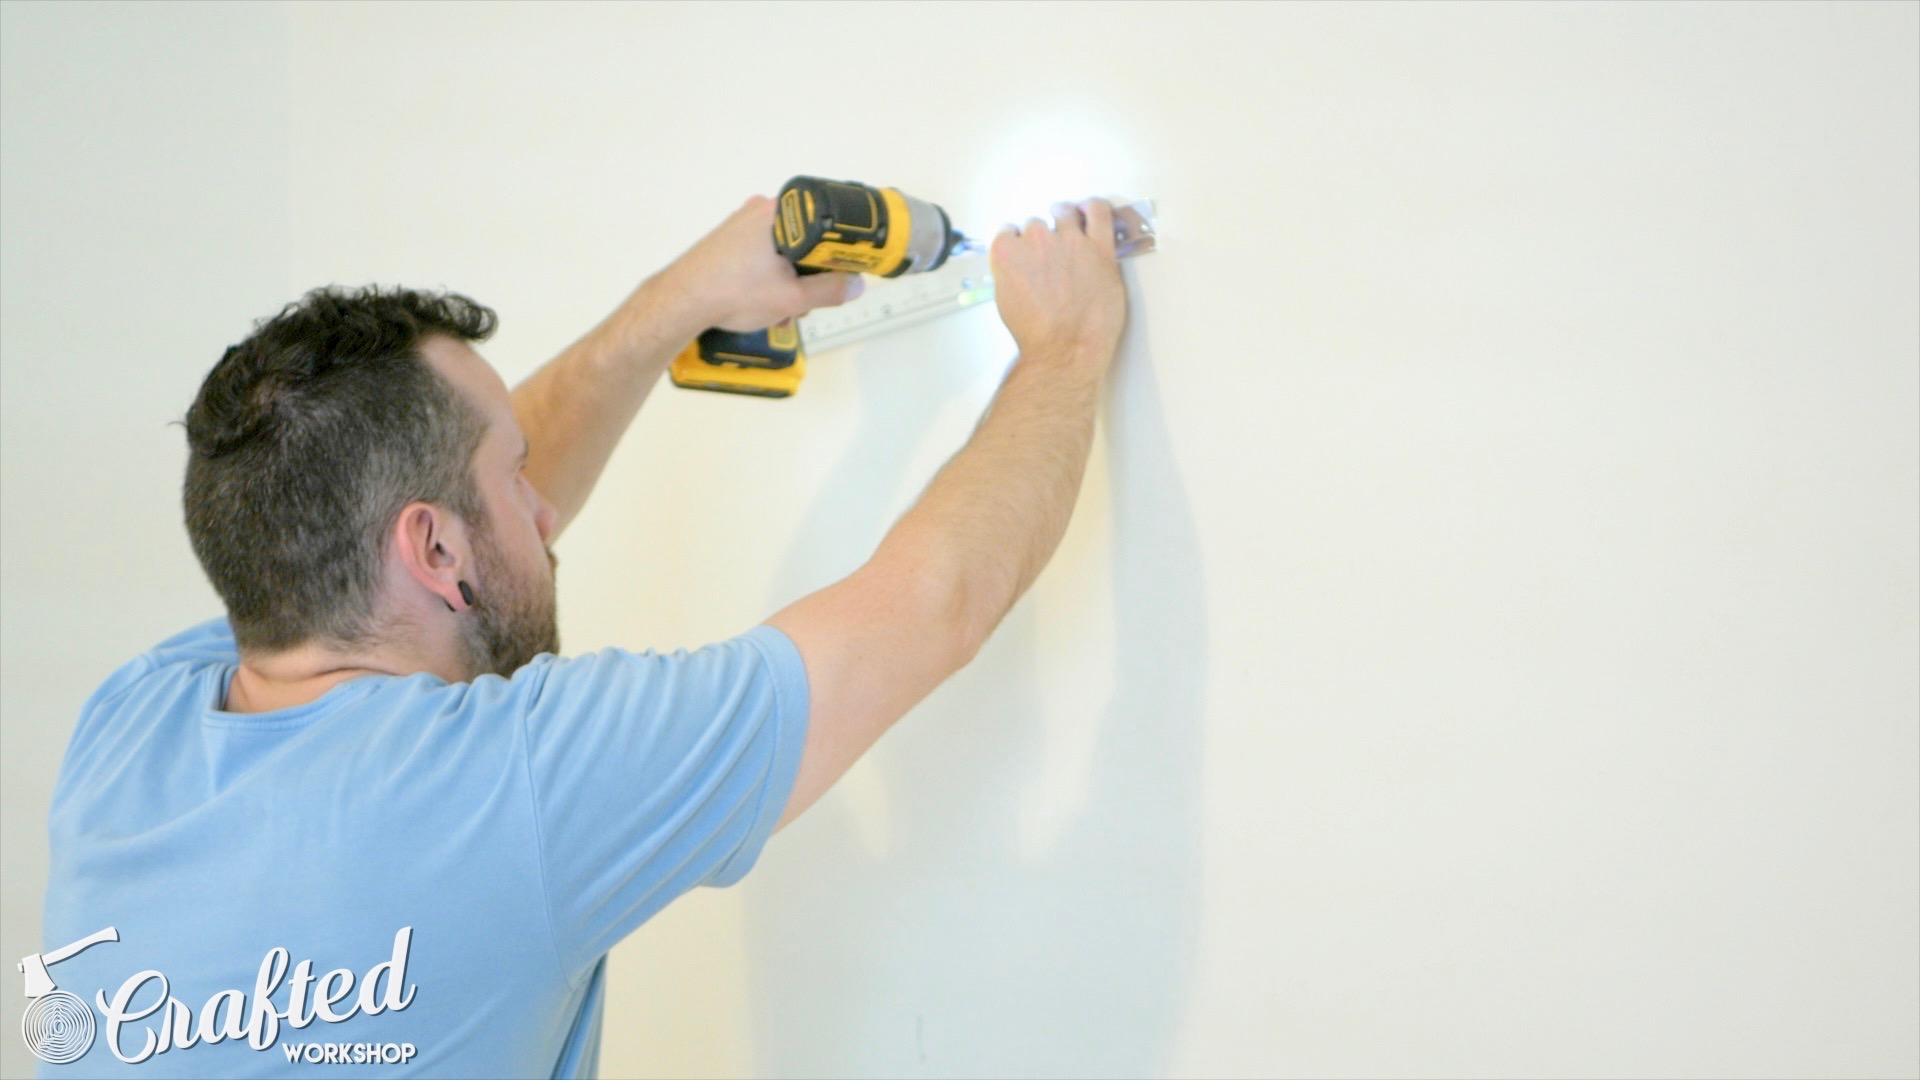 Installing cleat on wall.